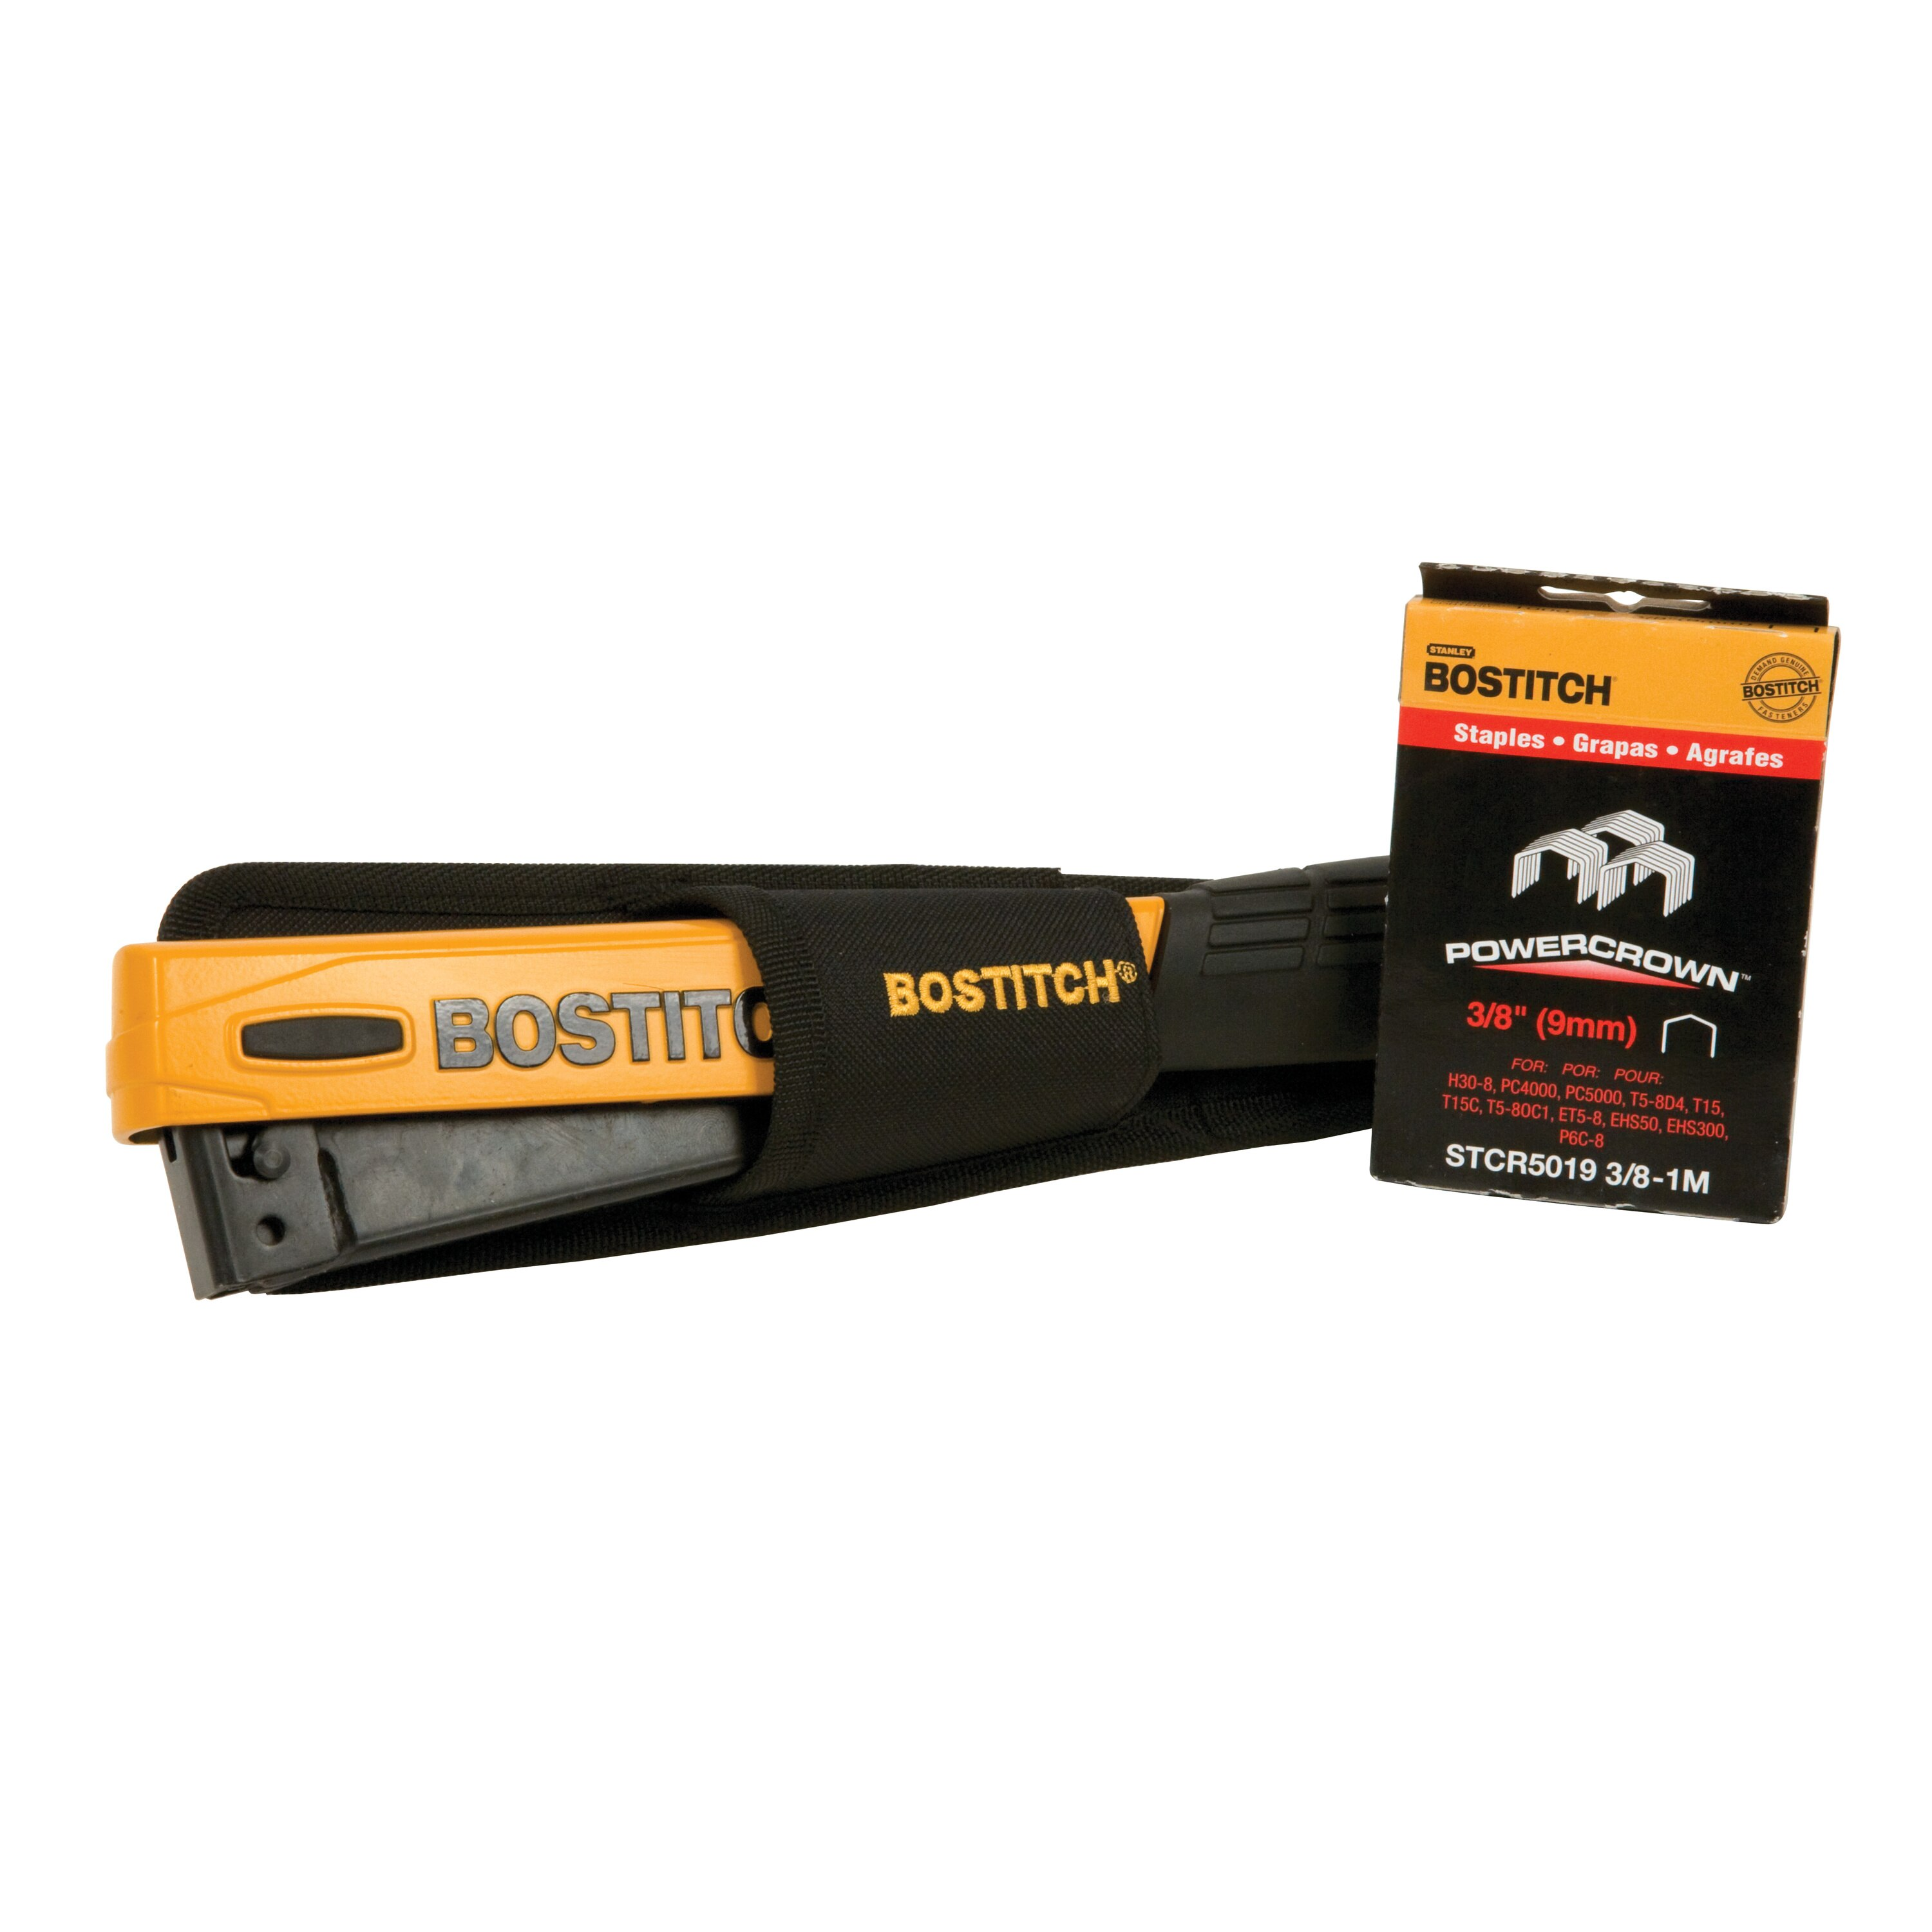 Bostitch - PowerCrown Hammer Tacker - H30-8